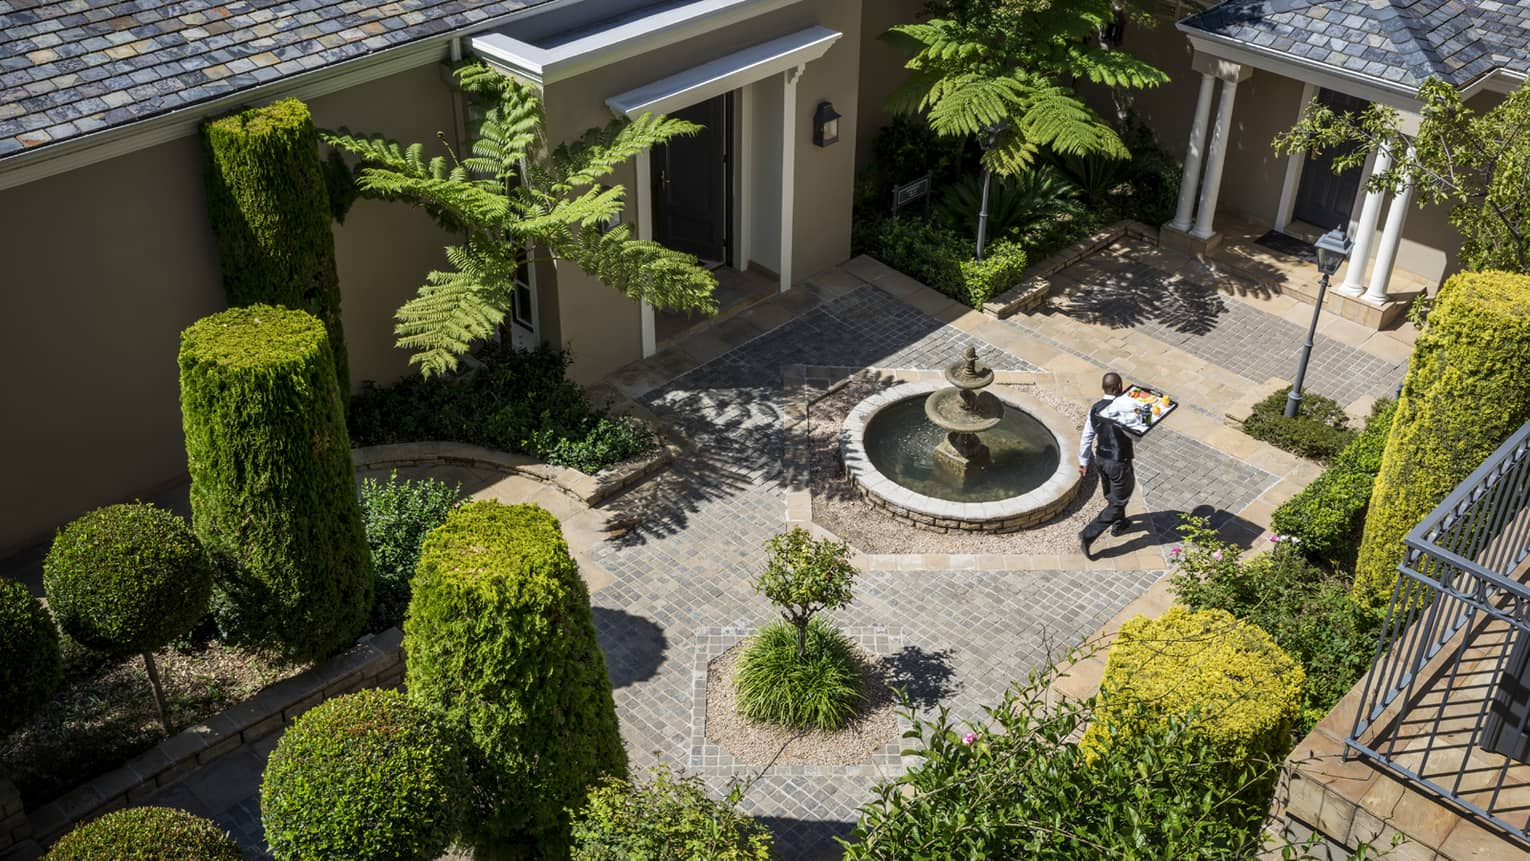 Aerial view of waiter carrying tray through brick courtyard with manicured green shrubs